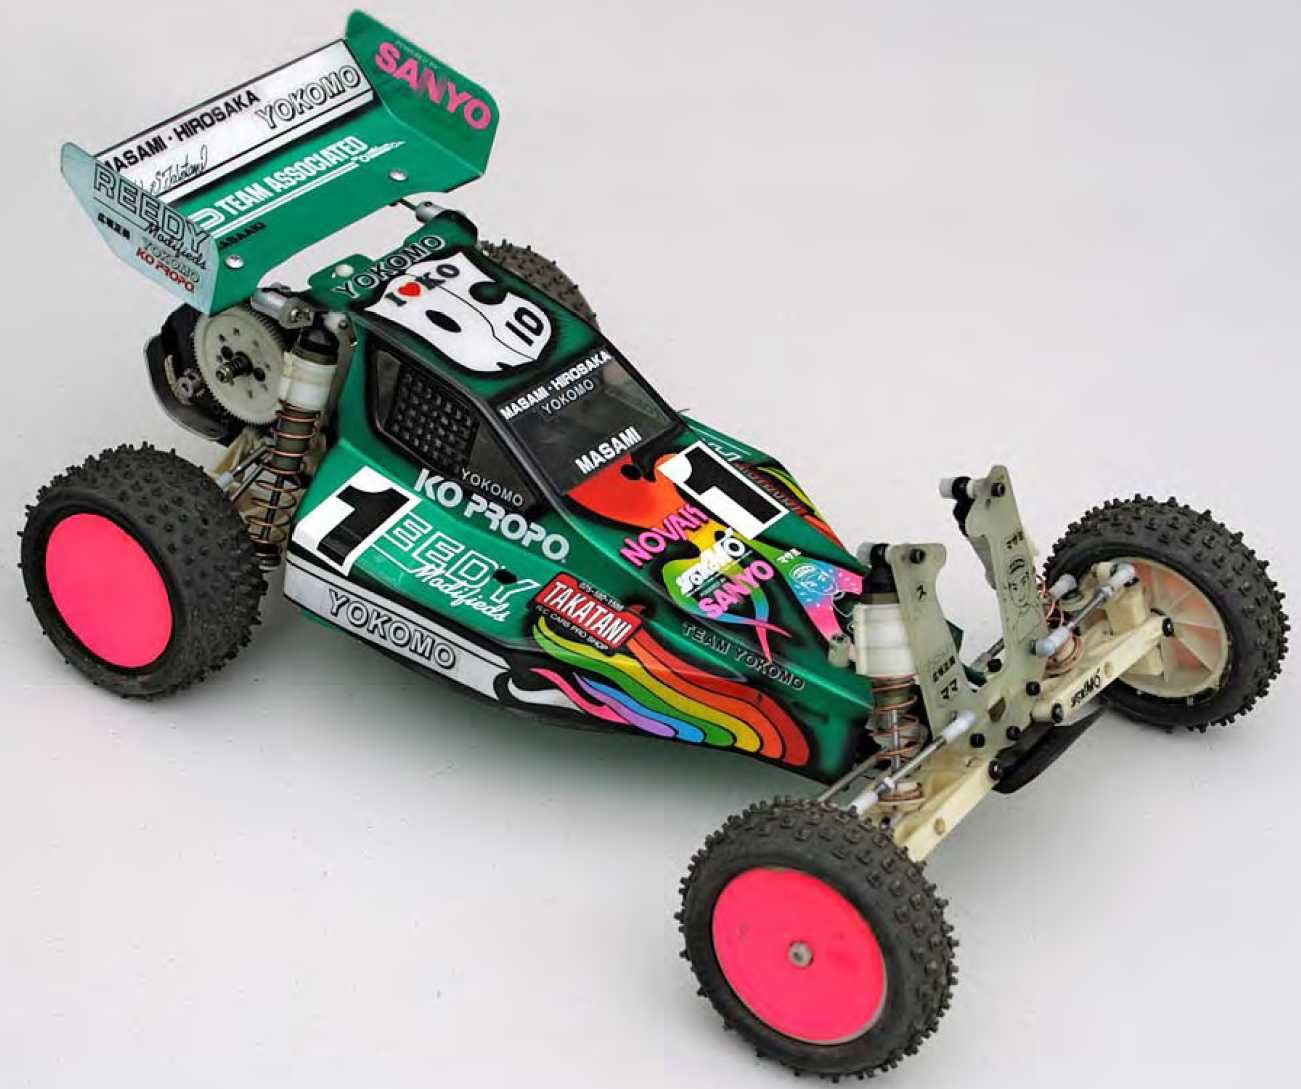 1991 Detroit Worlds RC10 Overall Front Right Corner